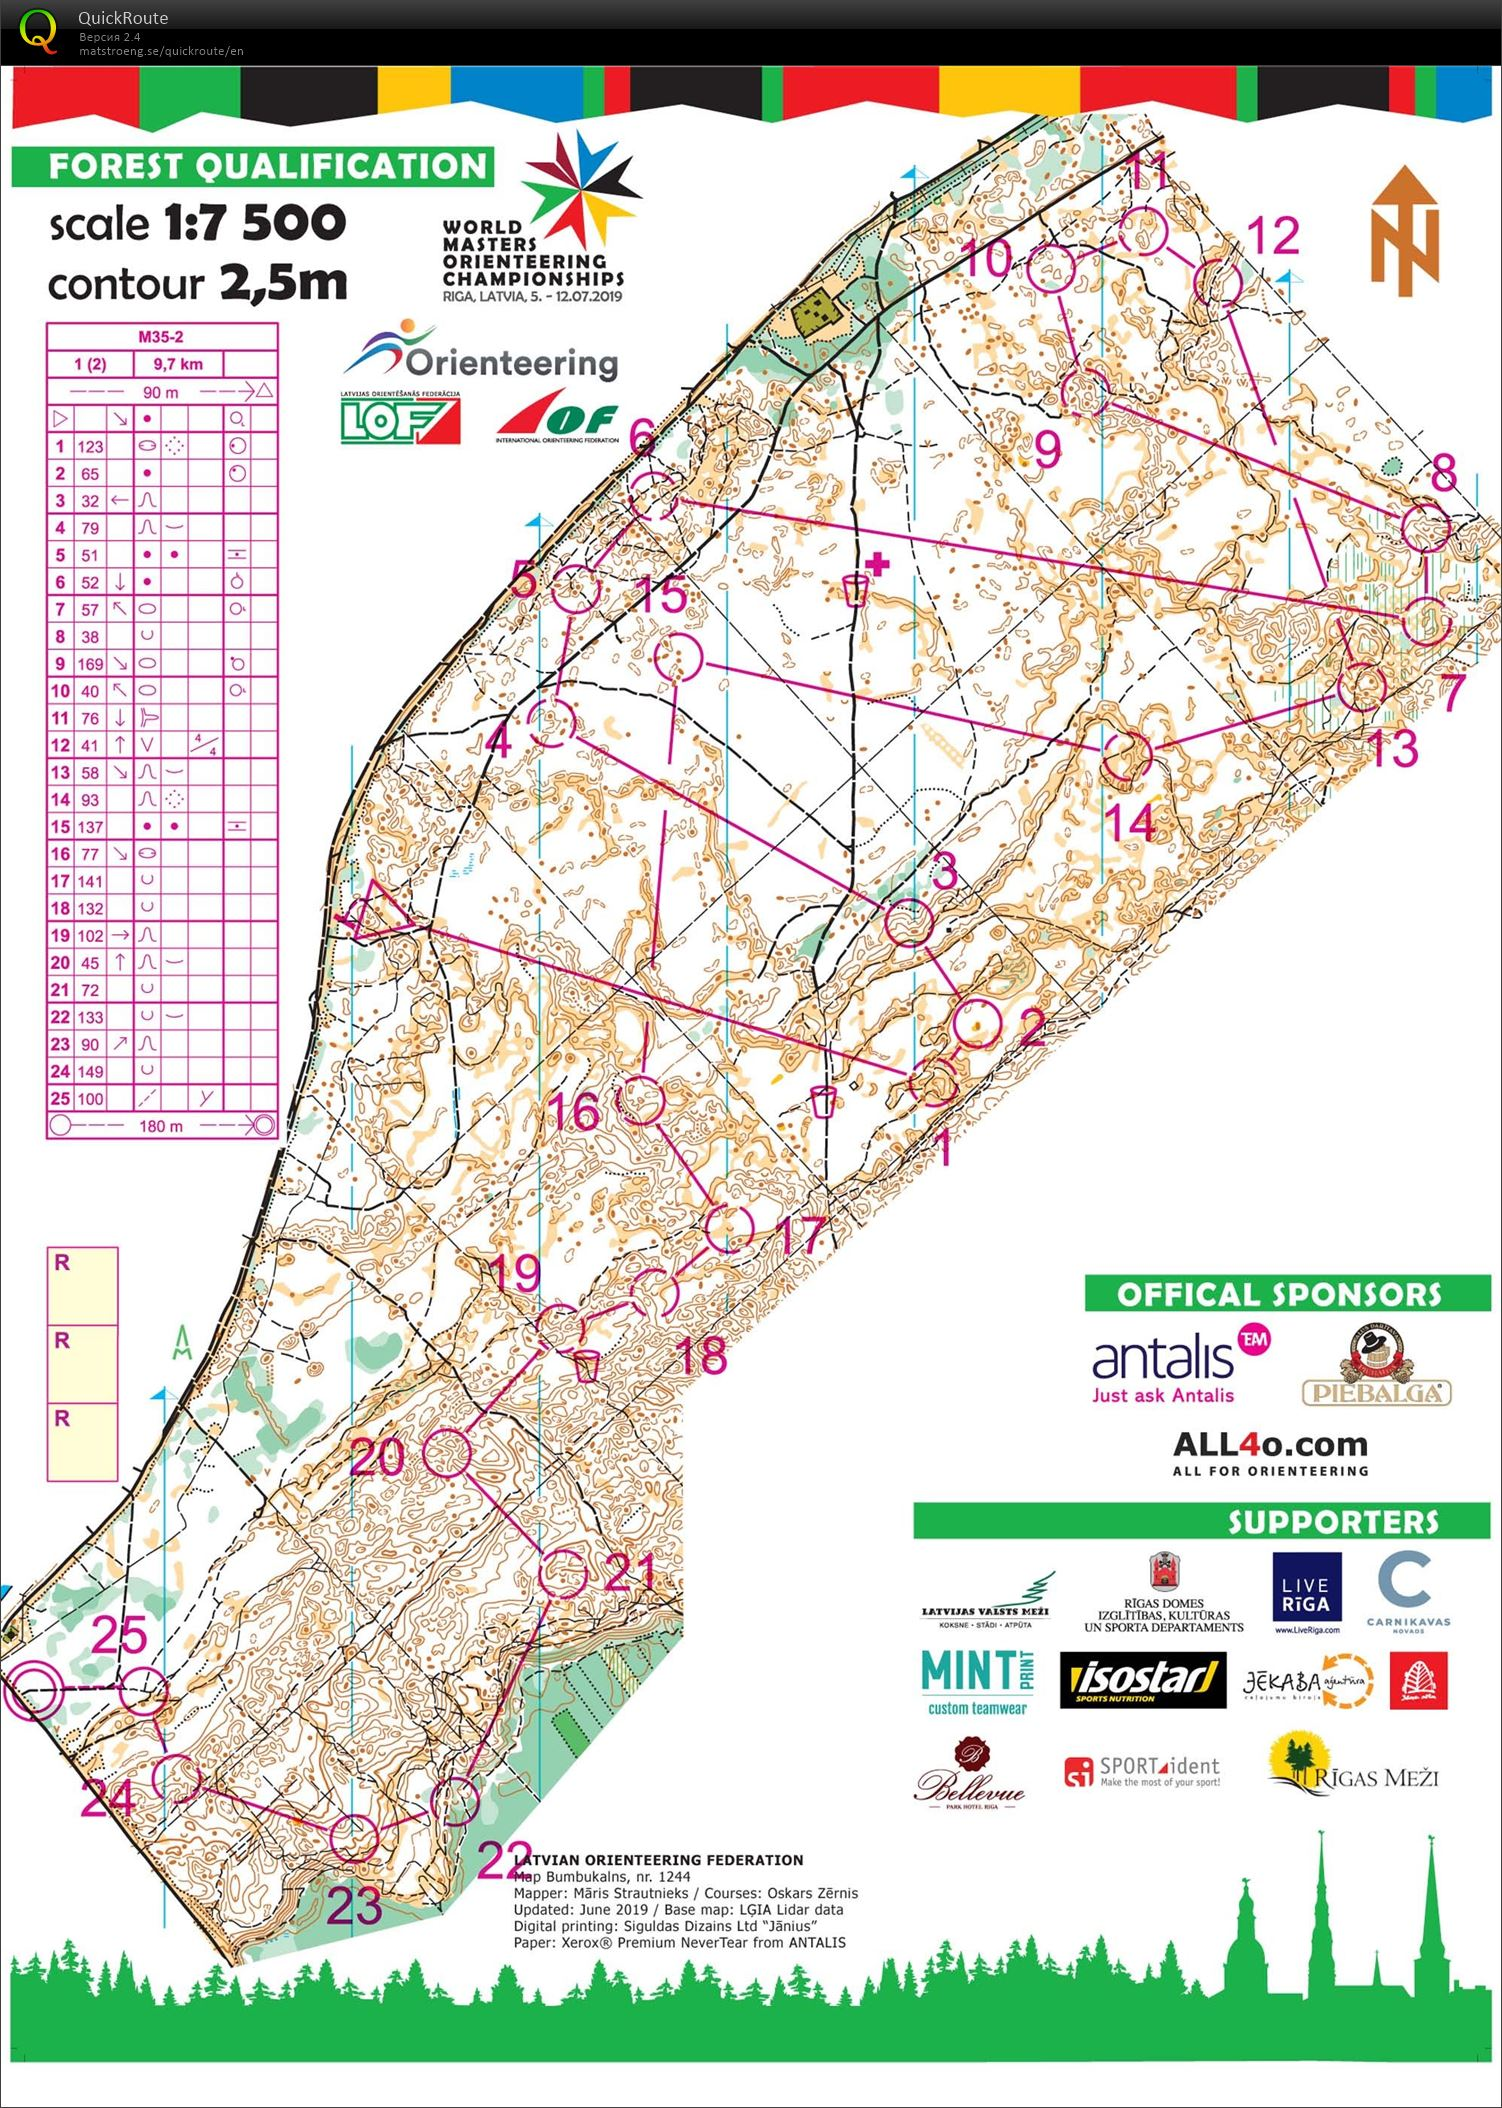 World Masters Orienteering Championships 2019. Forest Qualification.  (09/07/2019)